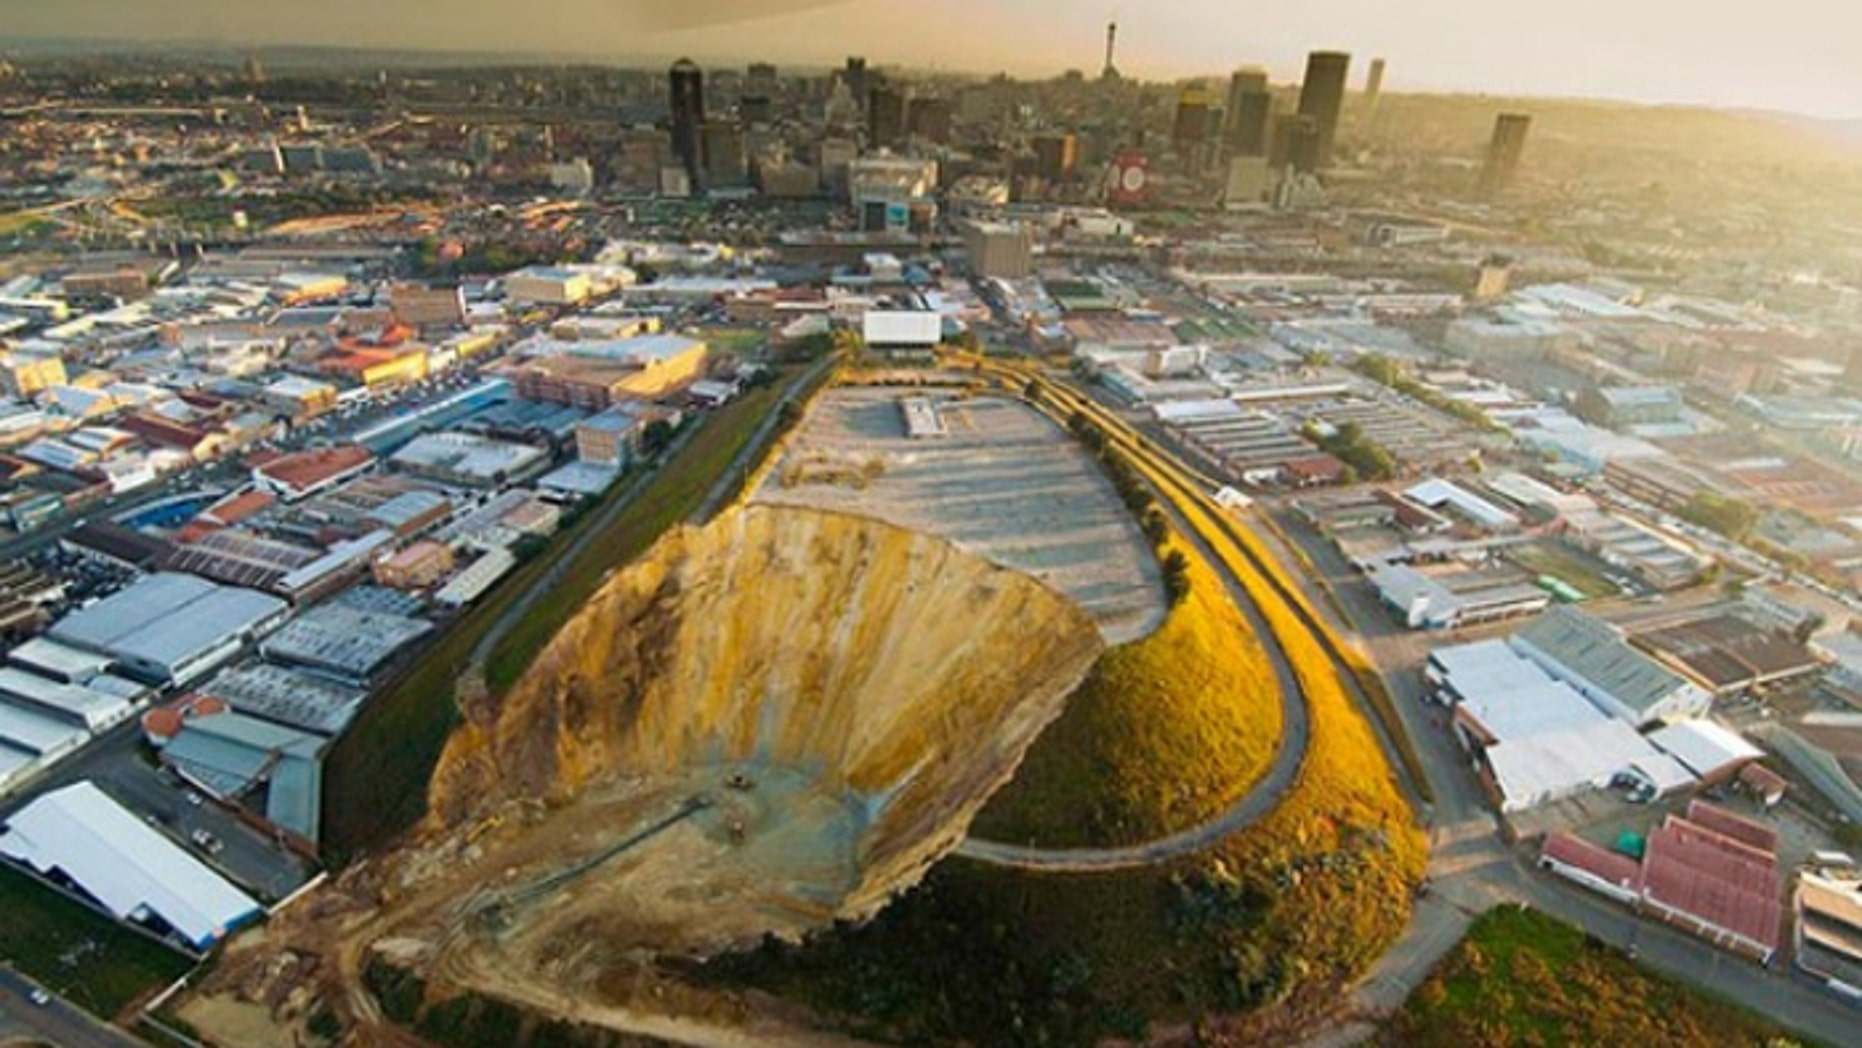 Johannesburg's landmark Top Star  mine waste dump, shown here during the early stages of removal, once hosted a drive-in movie theater. Now it is gone, and the land reclaimed. (Courtesy: DRD Gold)